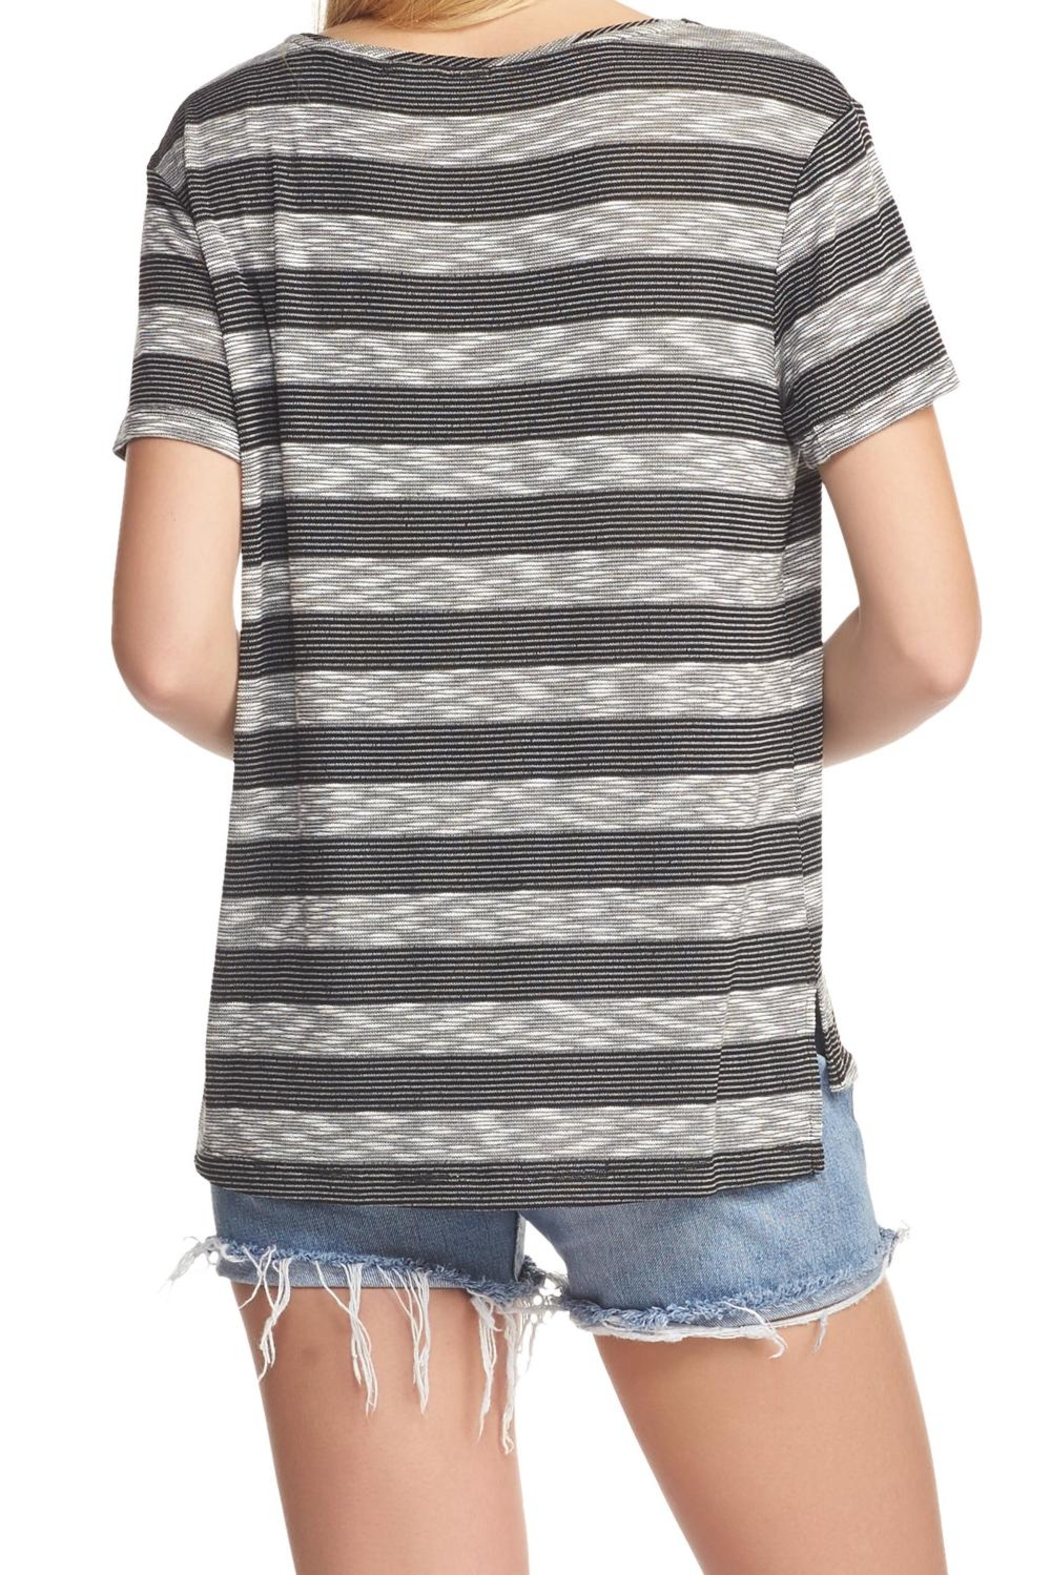 Tart Collections Striped Tee Top - Front Full Image